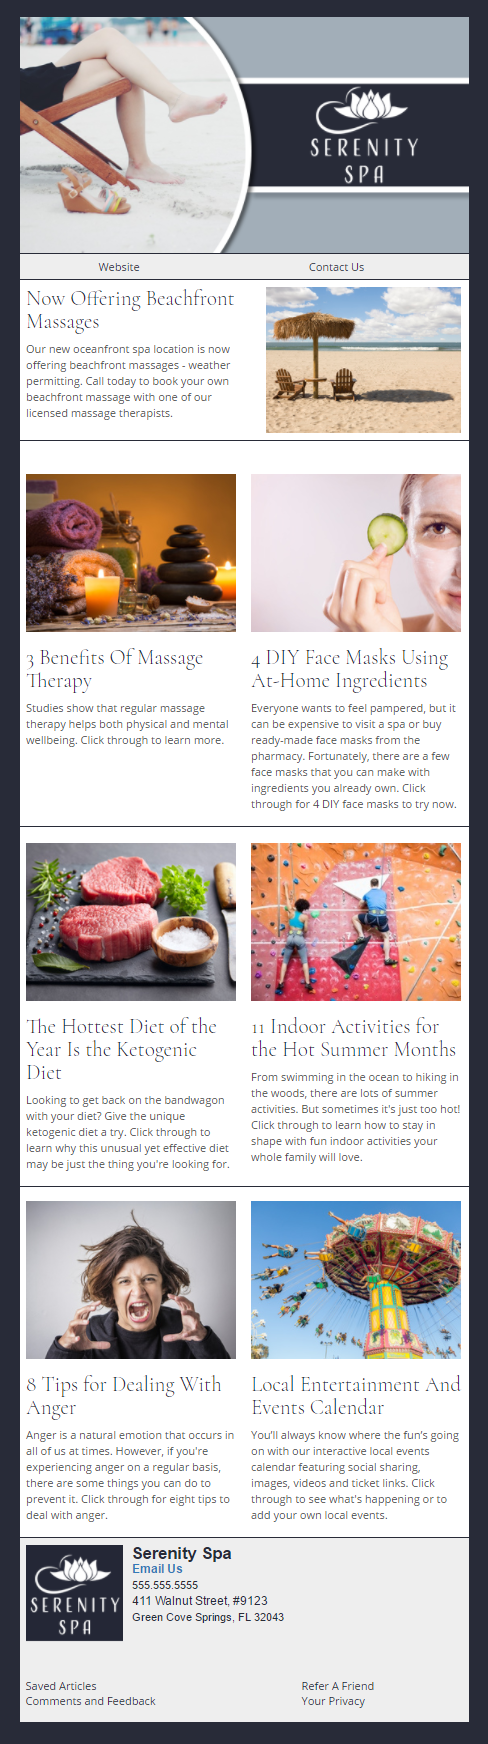 Serenity Spa - IndustryNewsletters Sample Email Newsletter